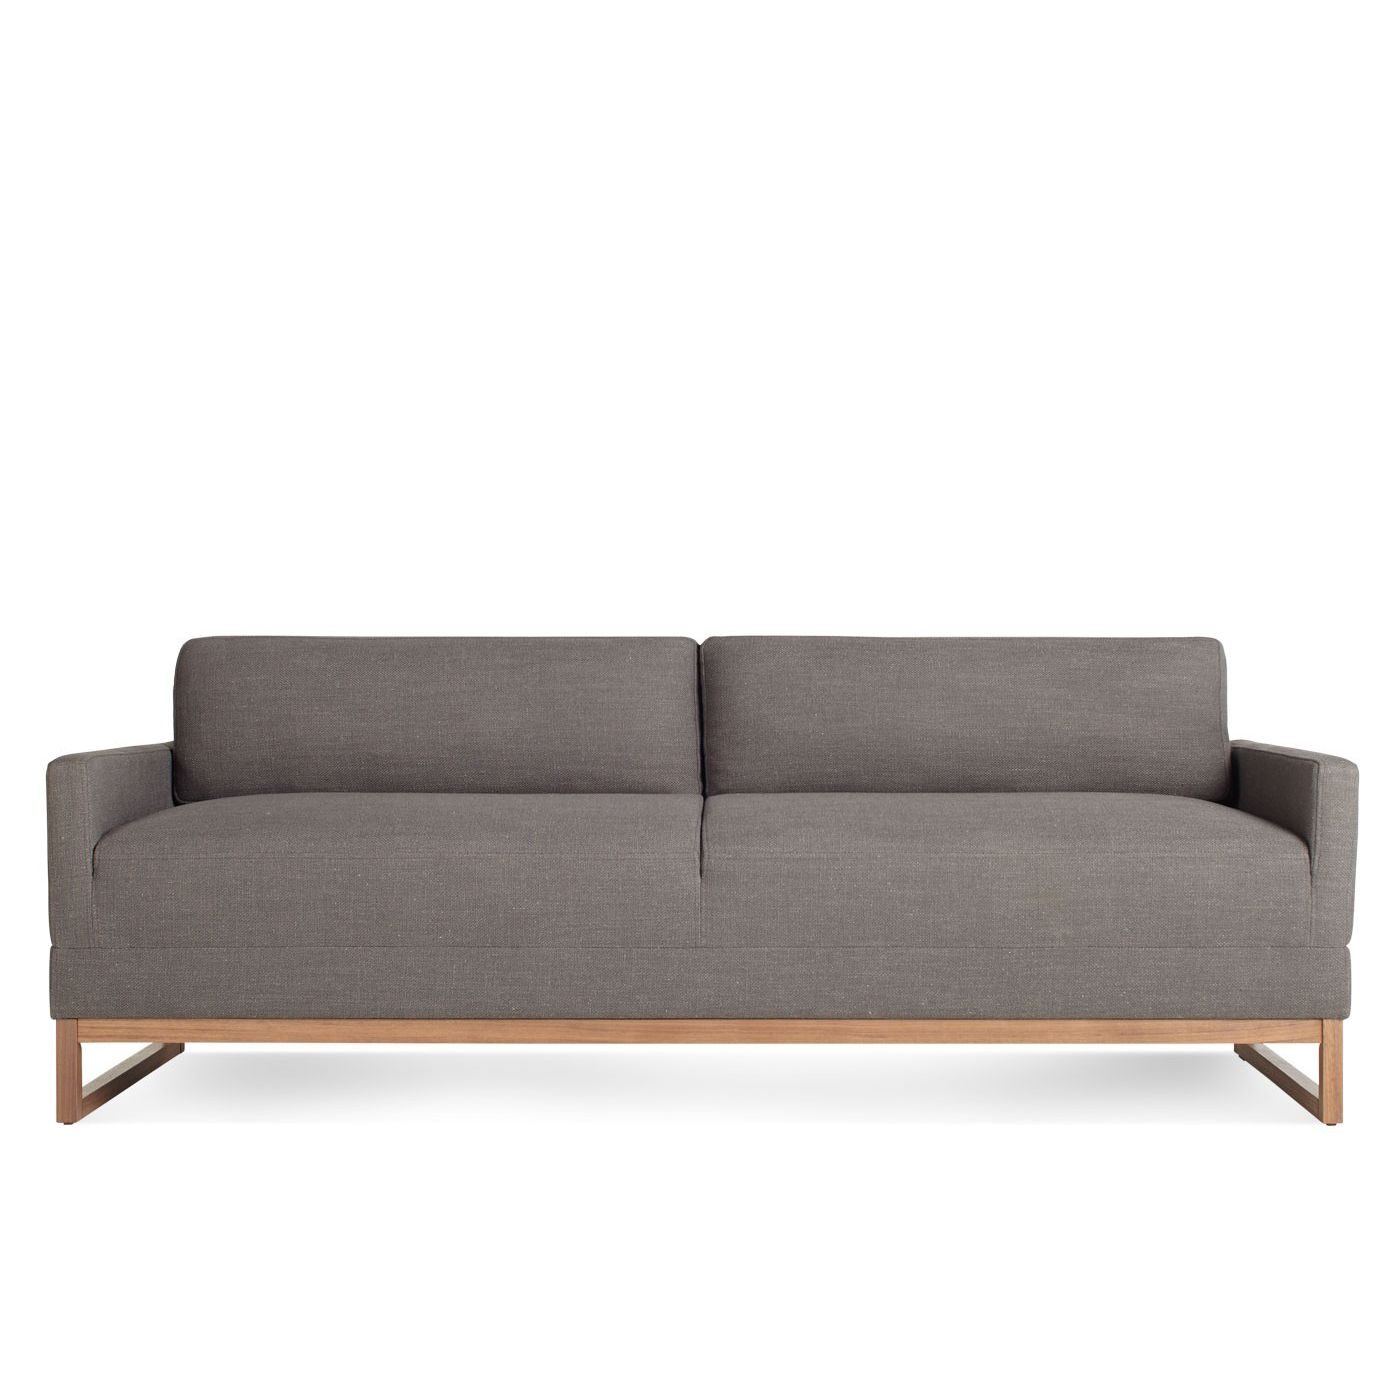 The Best Sleeper Sofas And Sofa Beds Moveis Modernos Decoracao